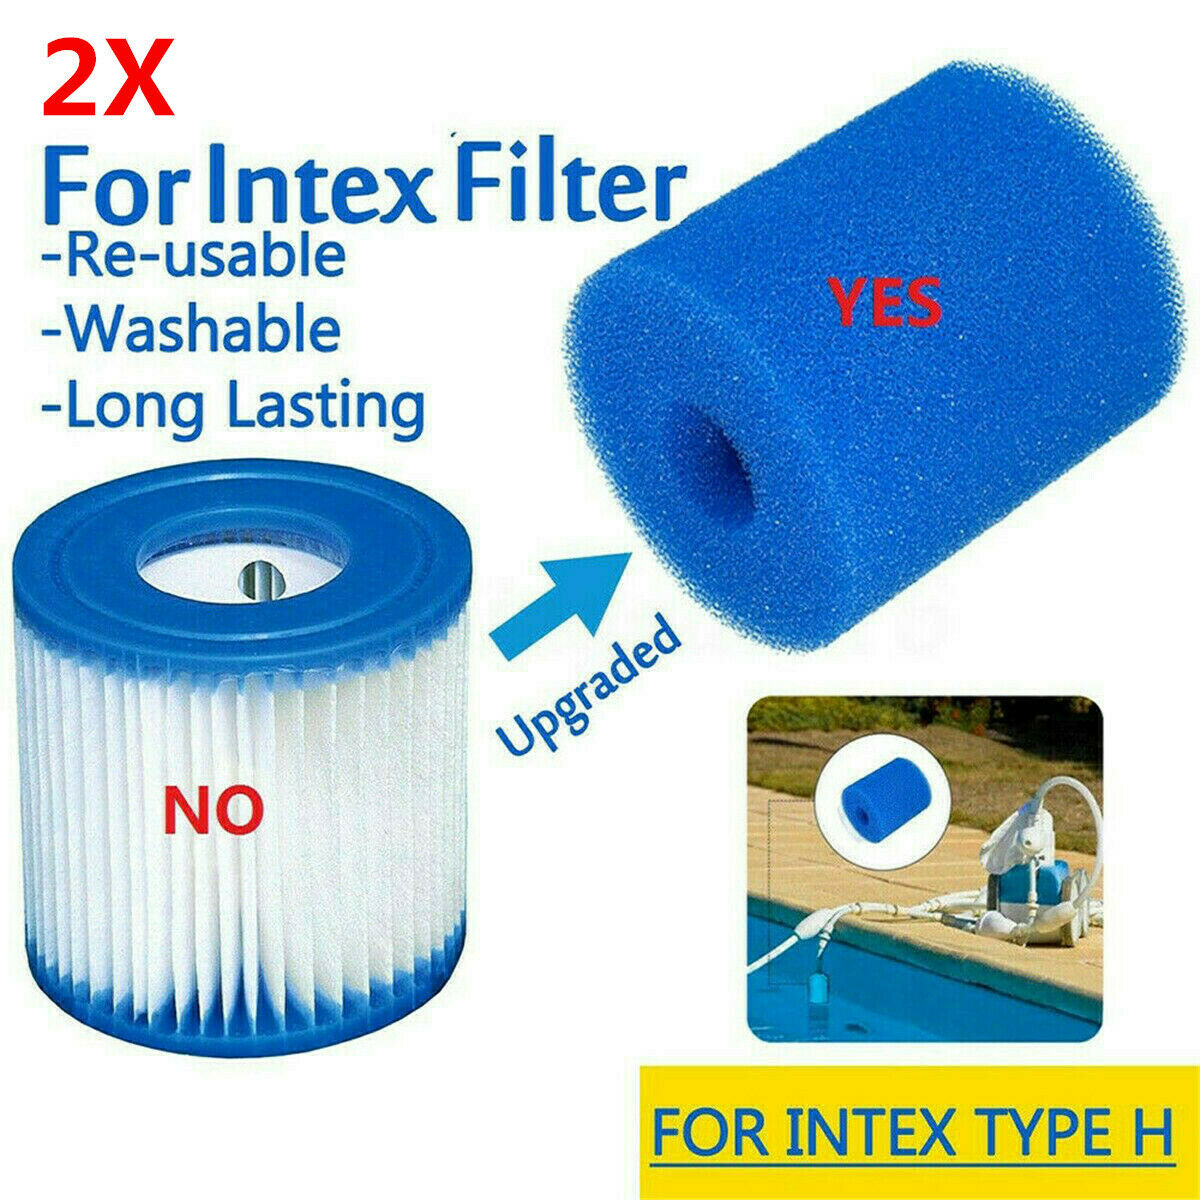 2X For Intex Type H Reusable Washable Swimming Pool Filter F